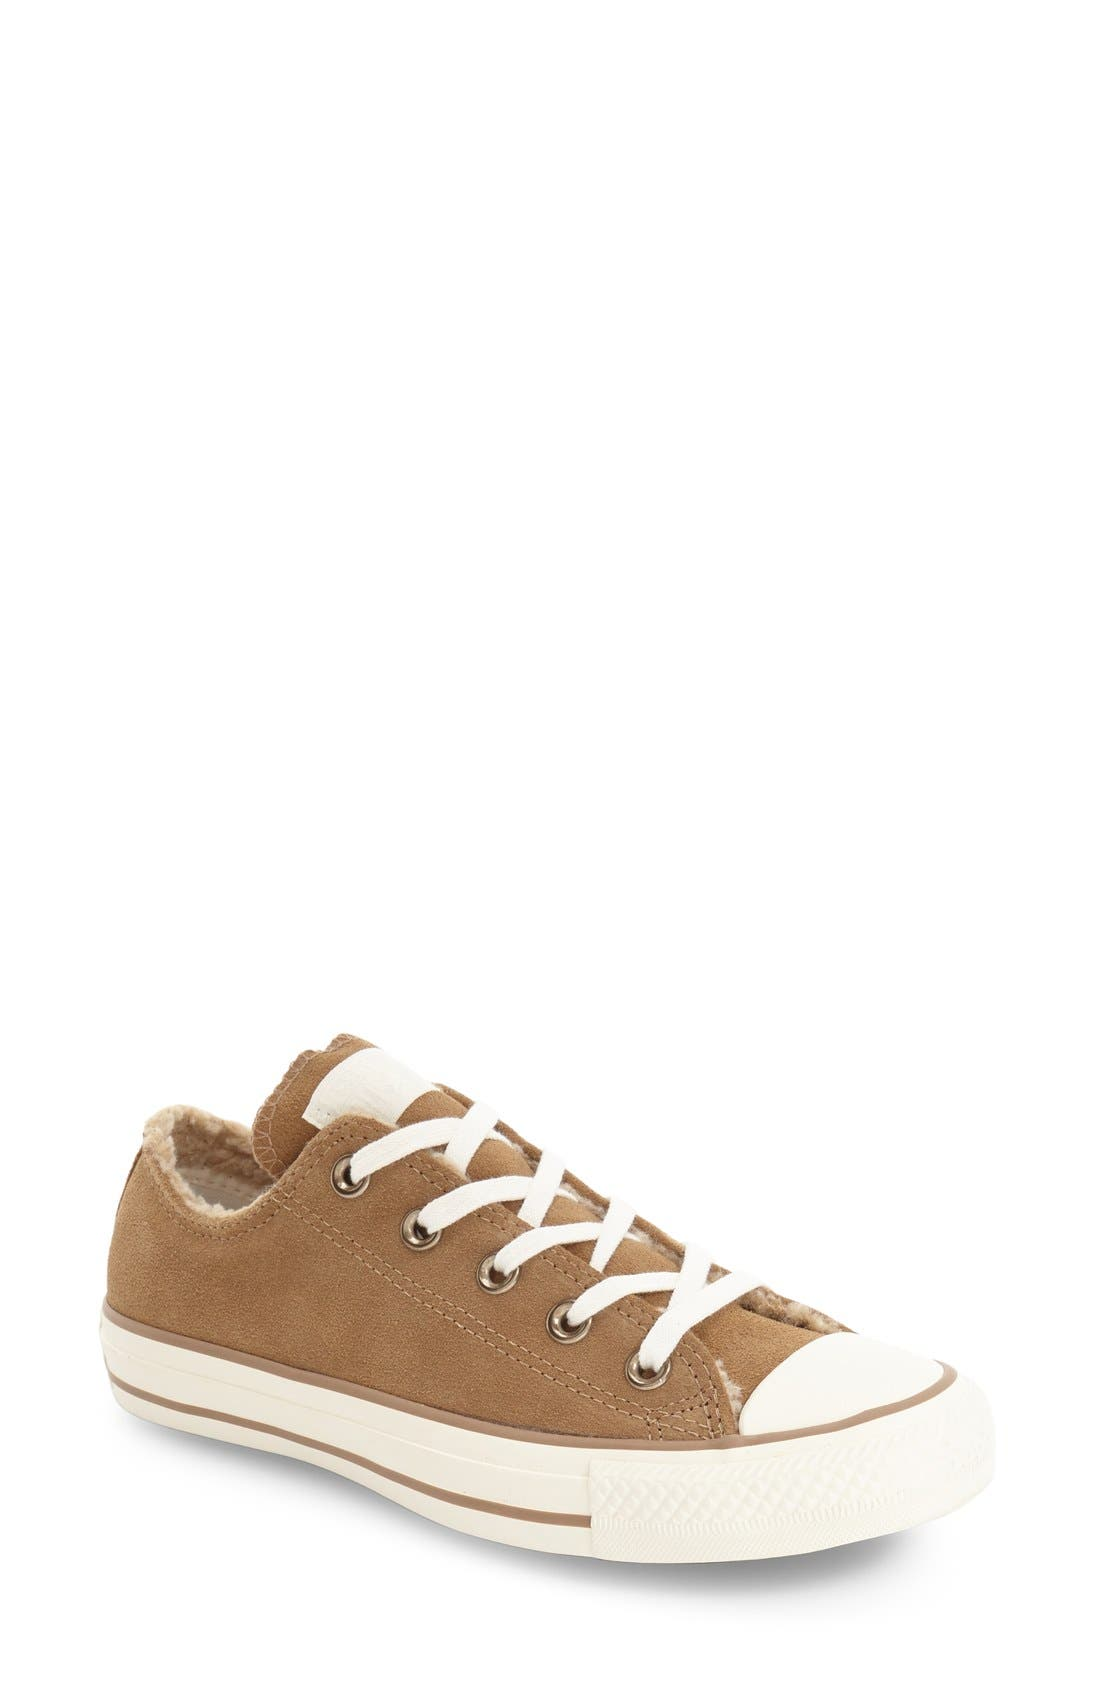 Main Image - Converse Chuck Taylor® All Star® Faux Shearling Lined Low Top Sneaker (Women)